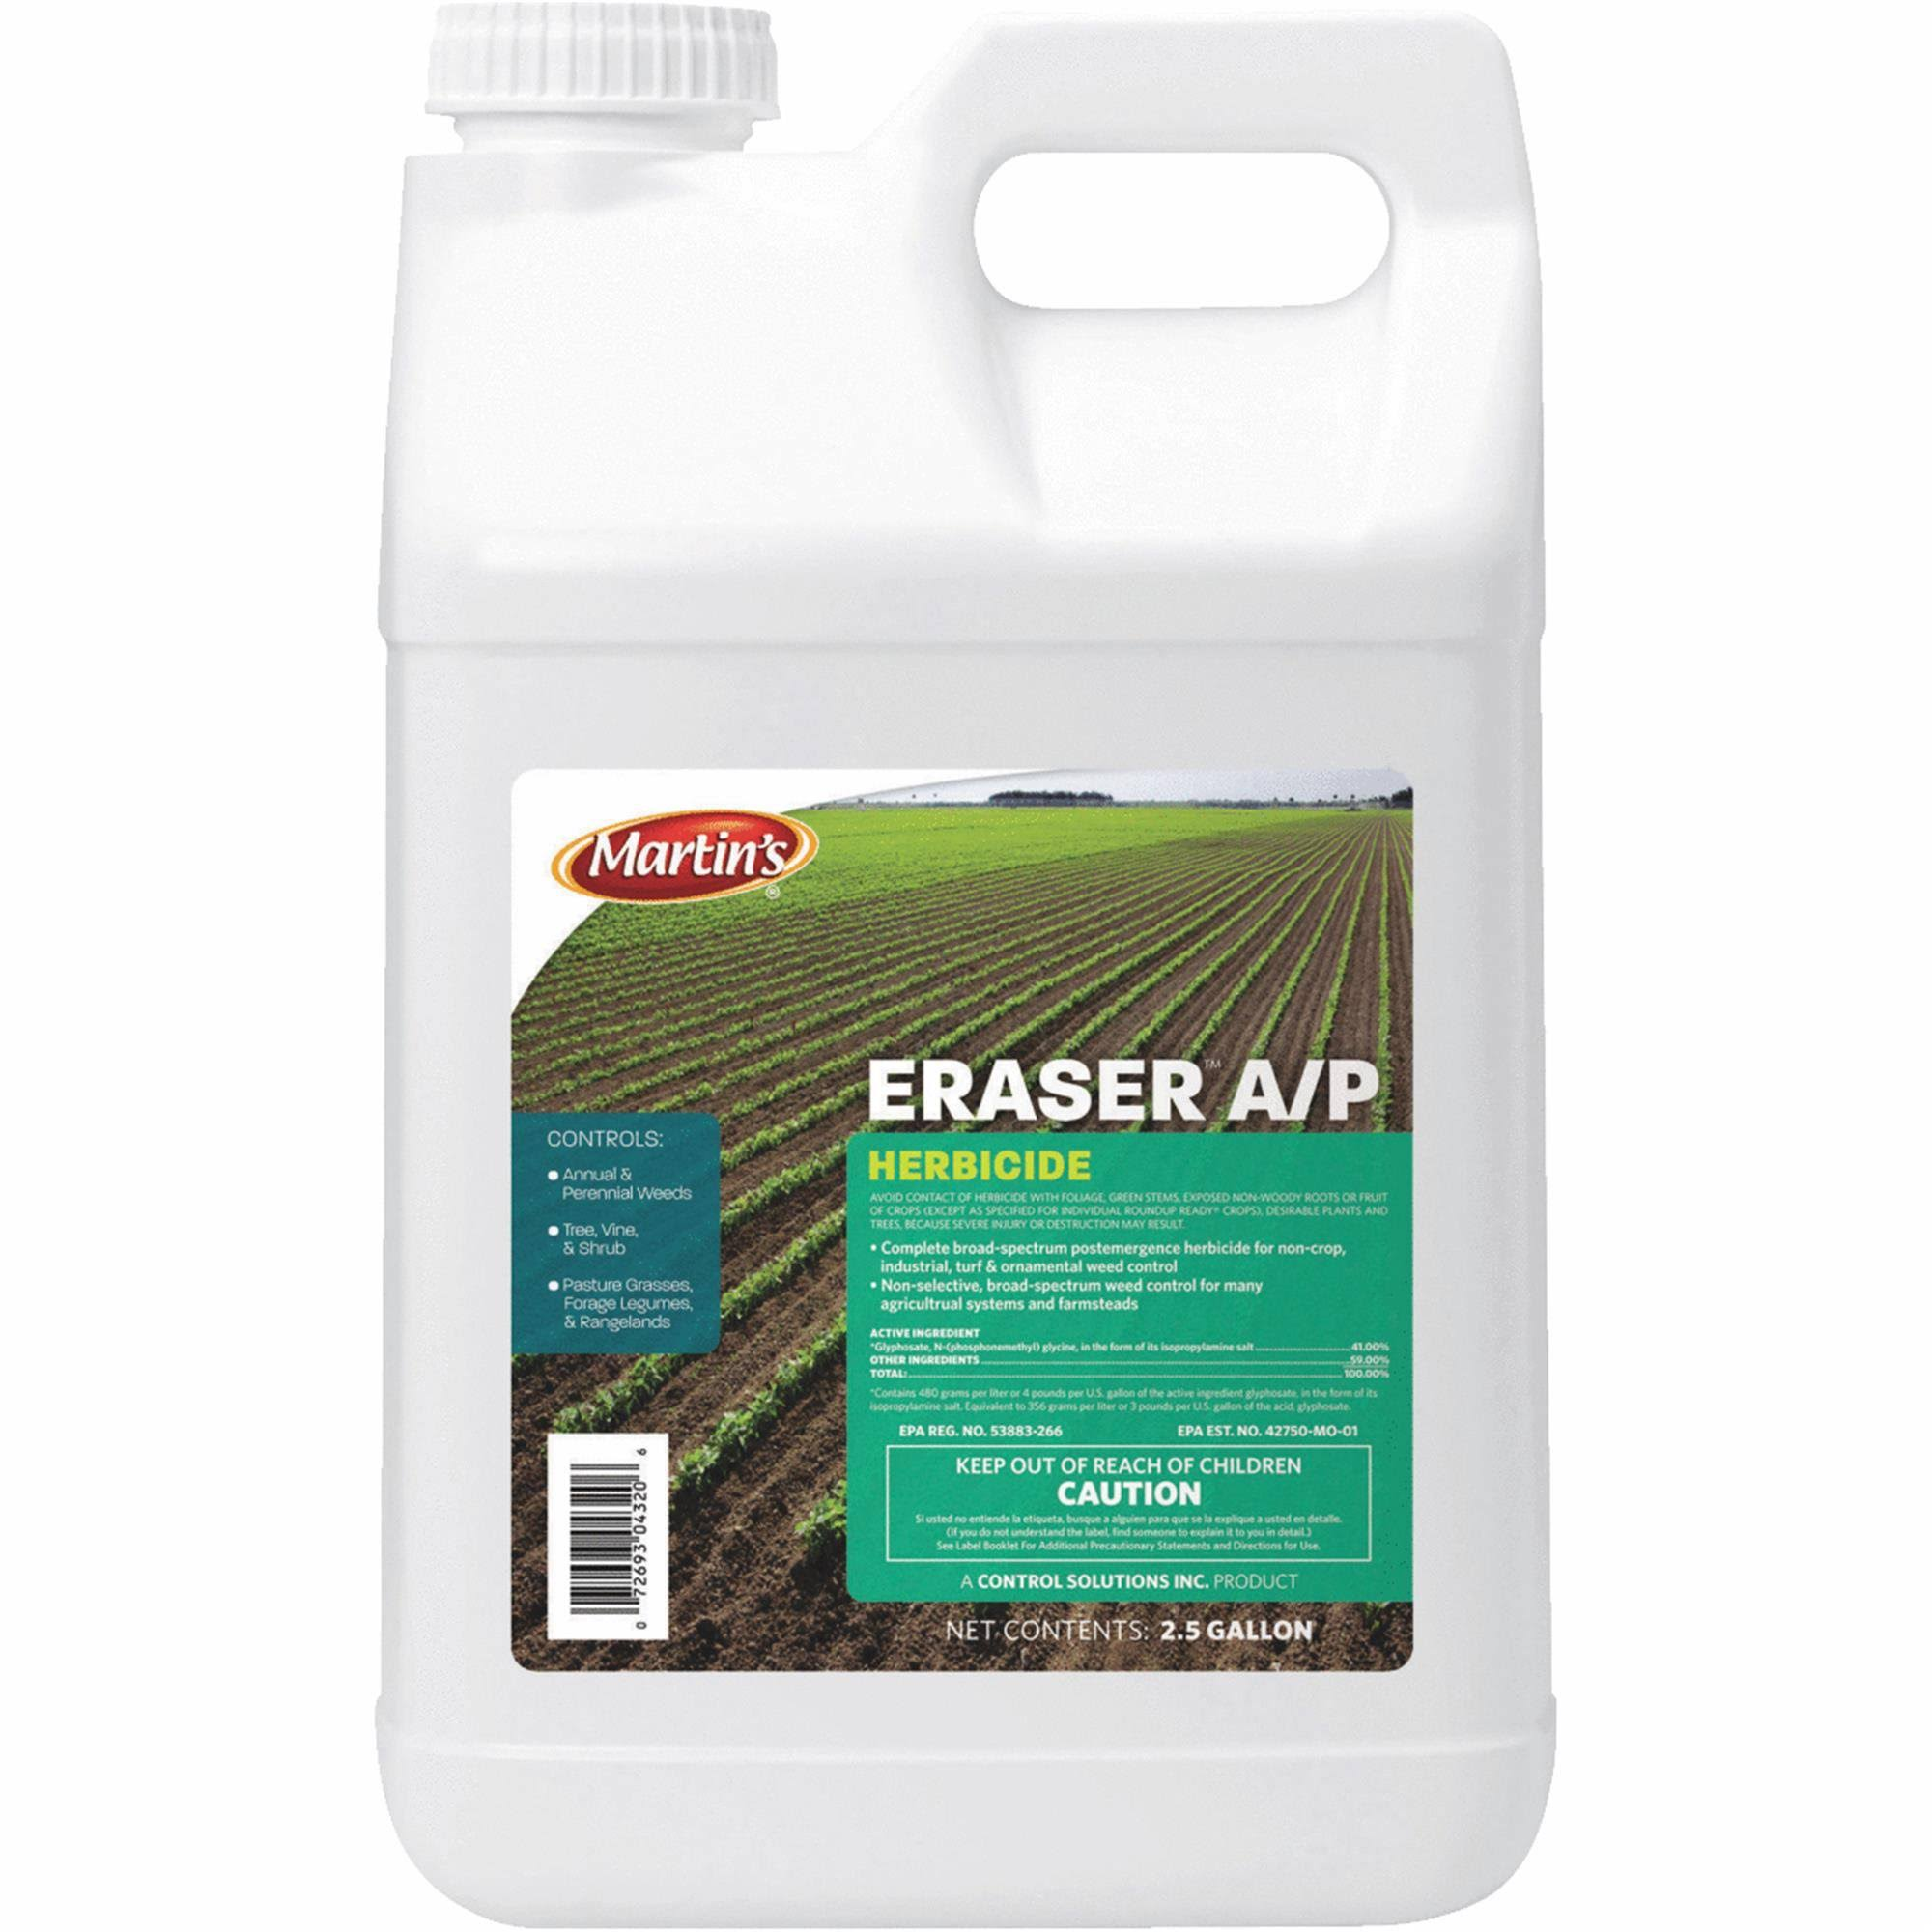 Control Solutions Eraser AP 41 Percent Concentrate Weed and Grass Killer - 2.5 Gallon